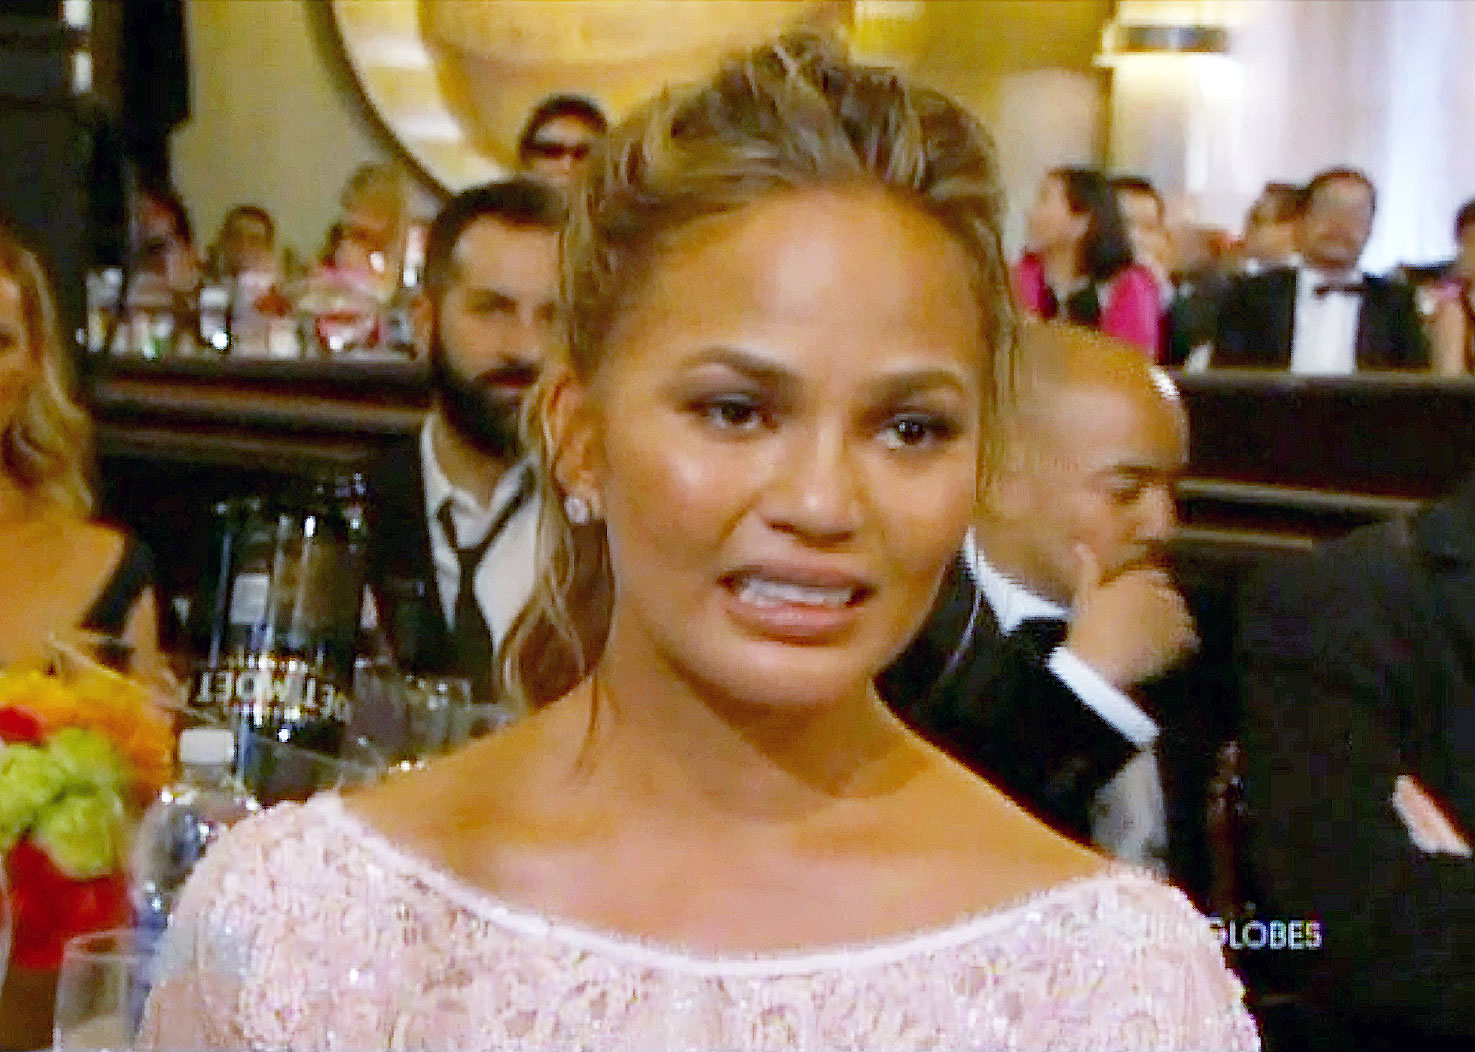 """Awards Shows Audience Reactions Chrissy Teigen Golden Globes 2015 - The Cravings cookbook author went viral for her grimacing crying face after her husband won the Golden Globe for Best Original Song in 2015. """"Sorry I don't practice my cry face okay,"""" she tweeted at the time."""